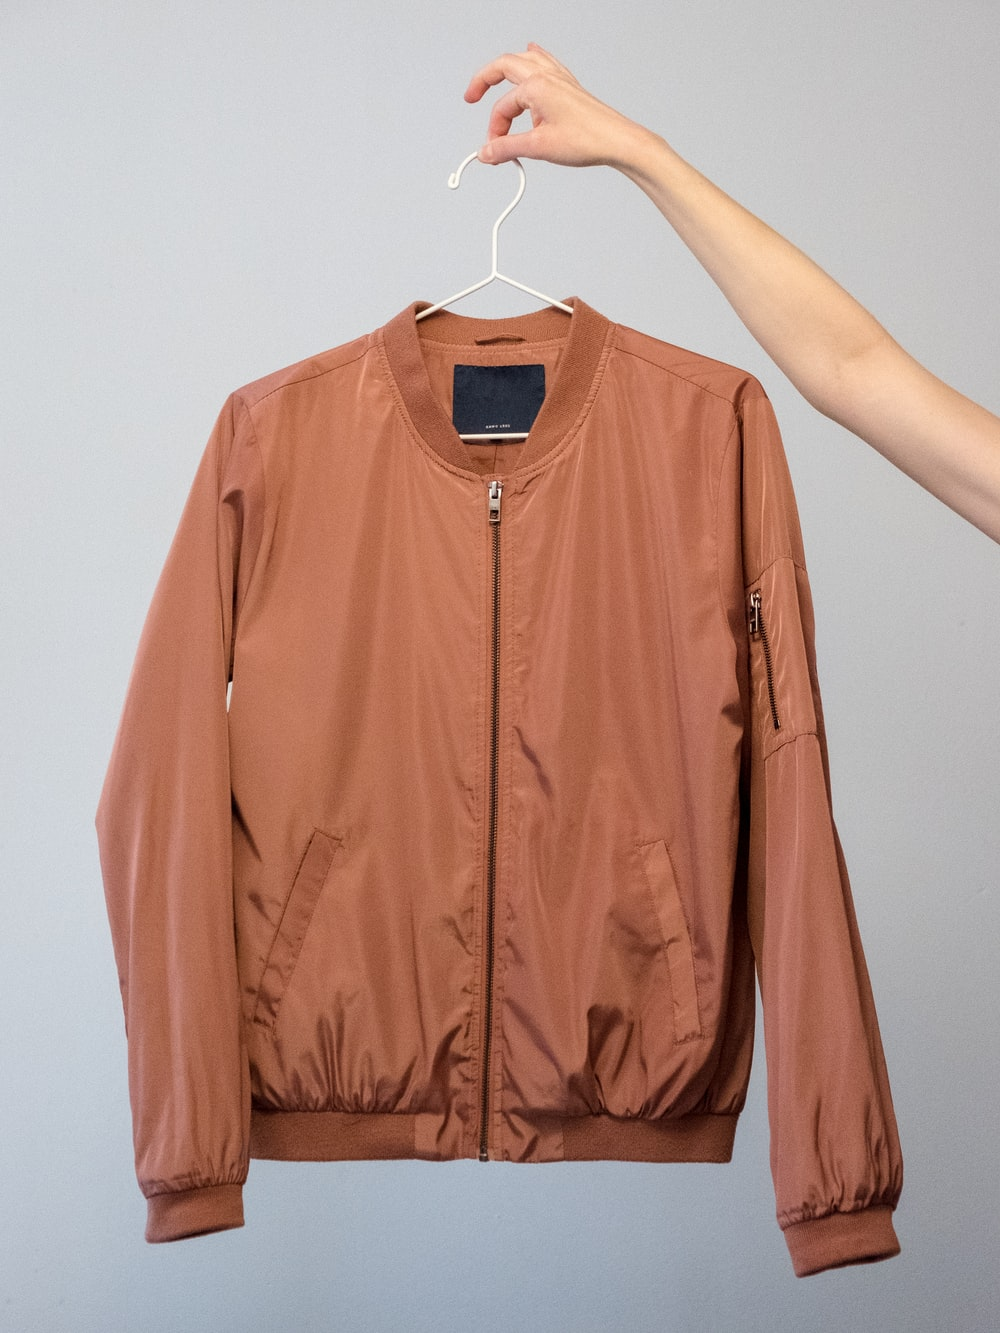 brown long sleeve shirt on white clothes hanger